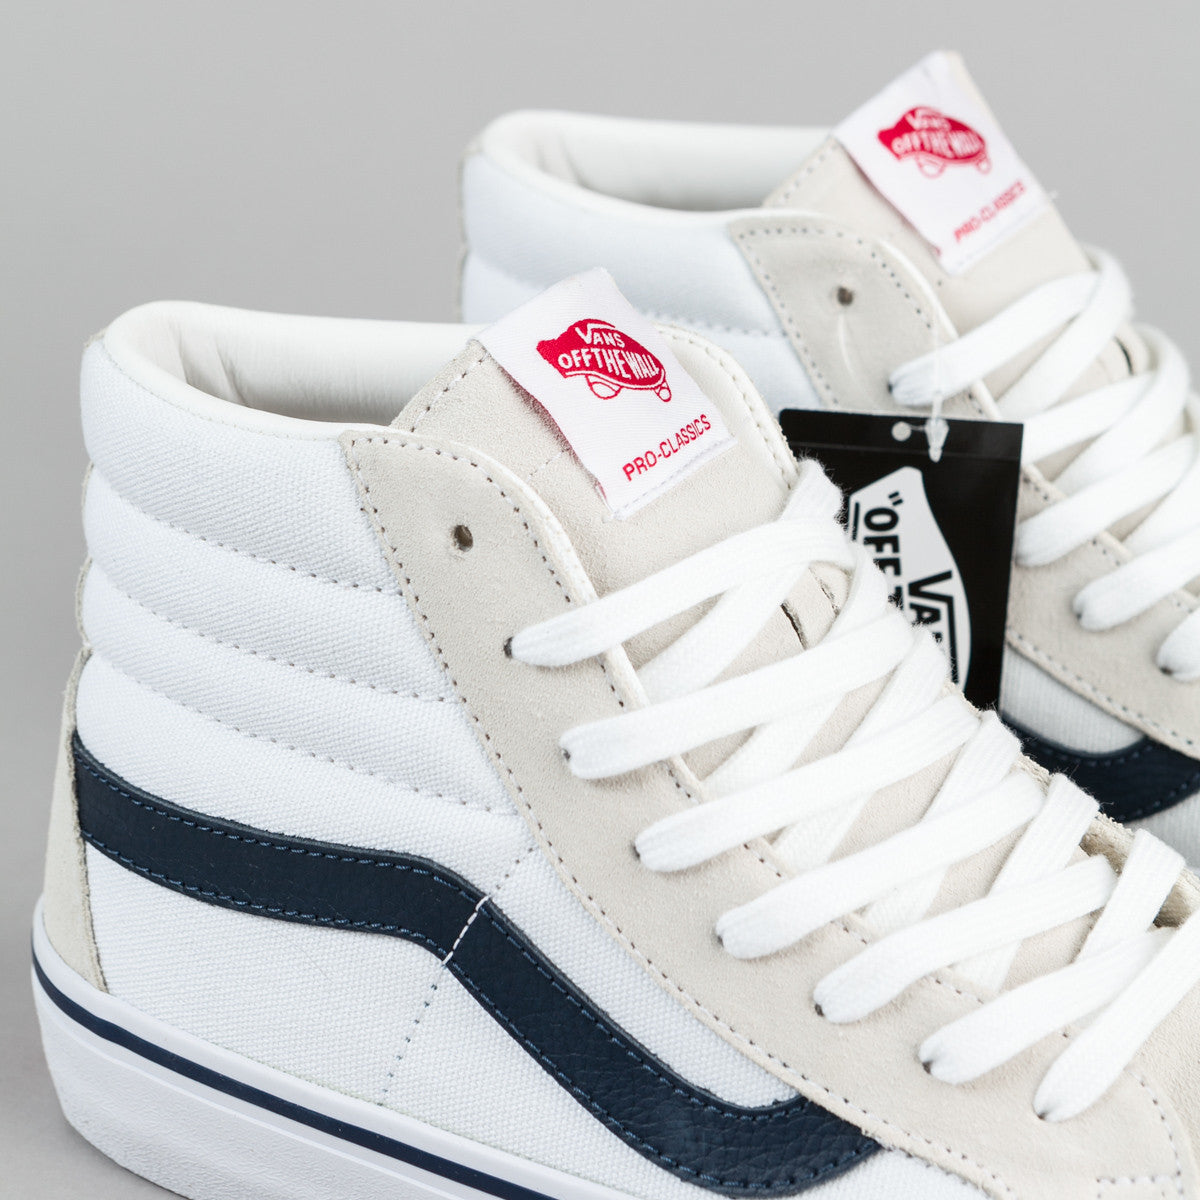 Vans 50th Sk8-Hi Pro '81 Reissue Shoes - White / Navy